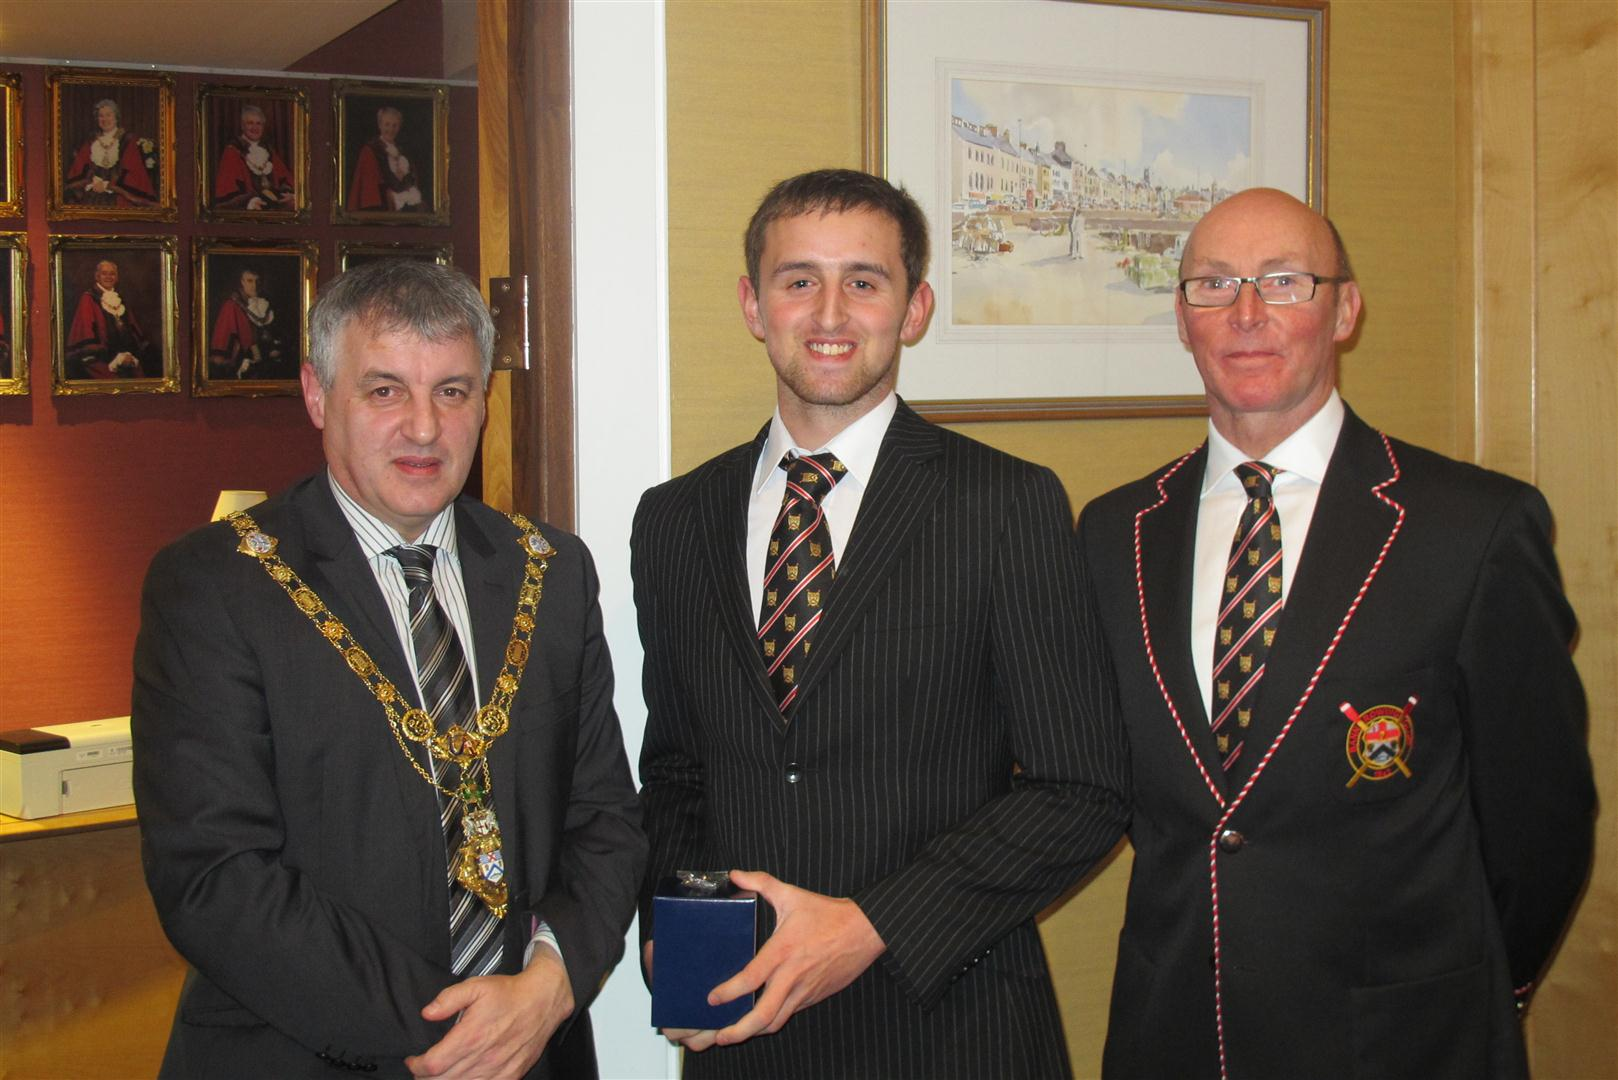 The Mayor, Club Captain and James